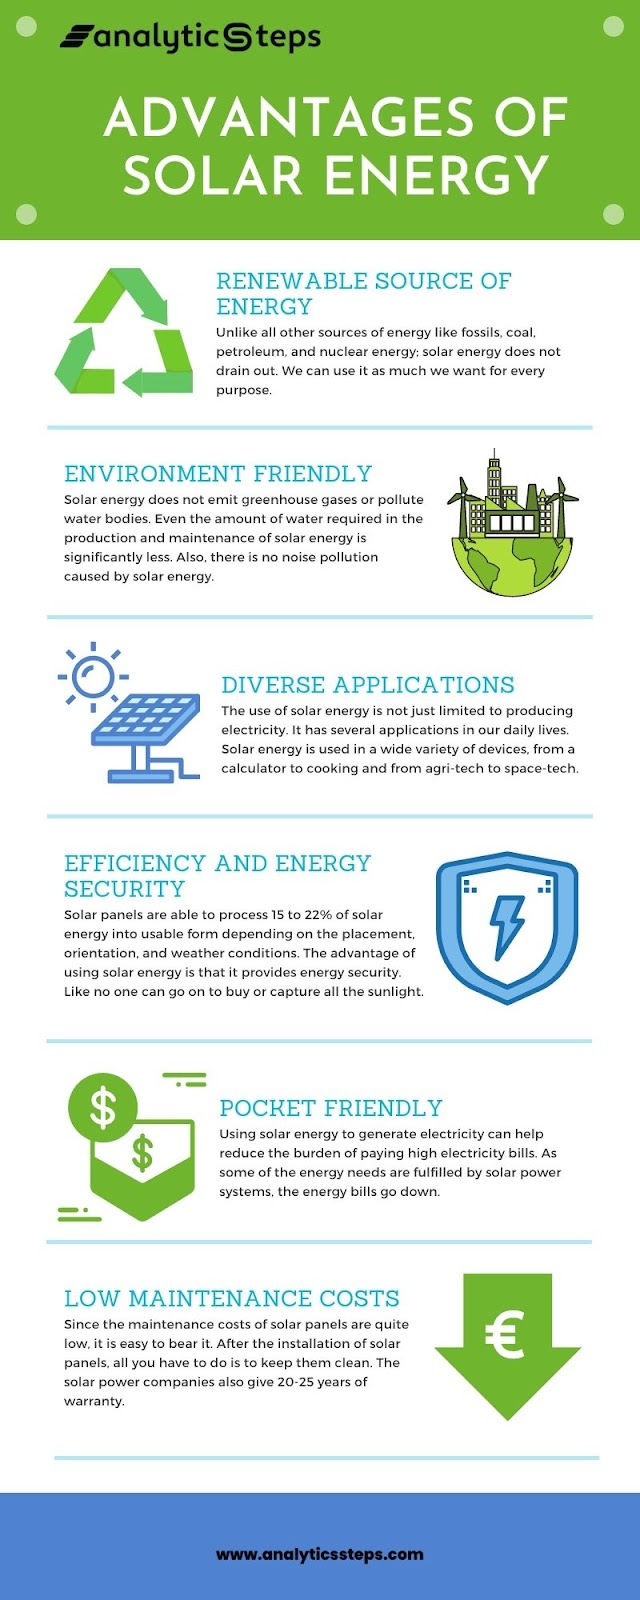 The infographic briefly discusses the advantages of solar energy that it is a renewable resource, environment friendly, has diverse applications, efficiency, low maintenance costs, energy security, and pocket-friendly.